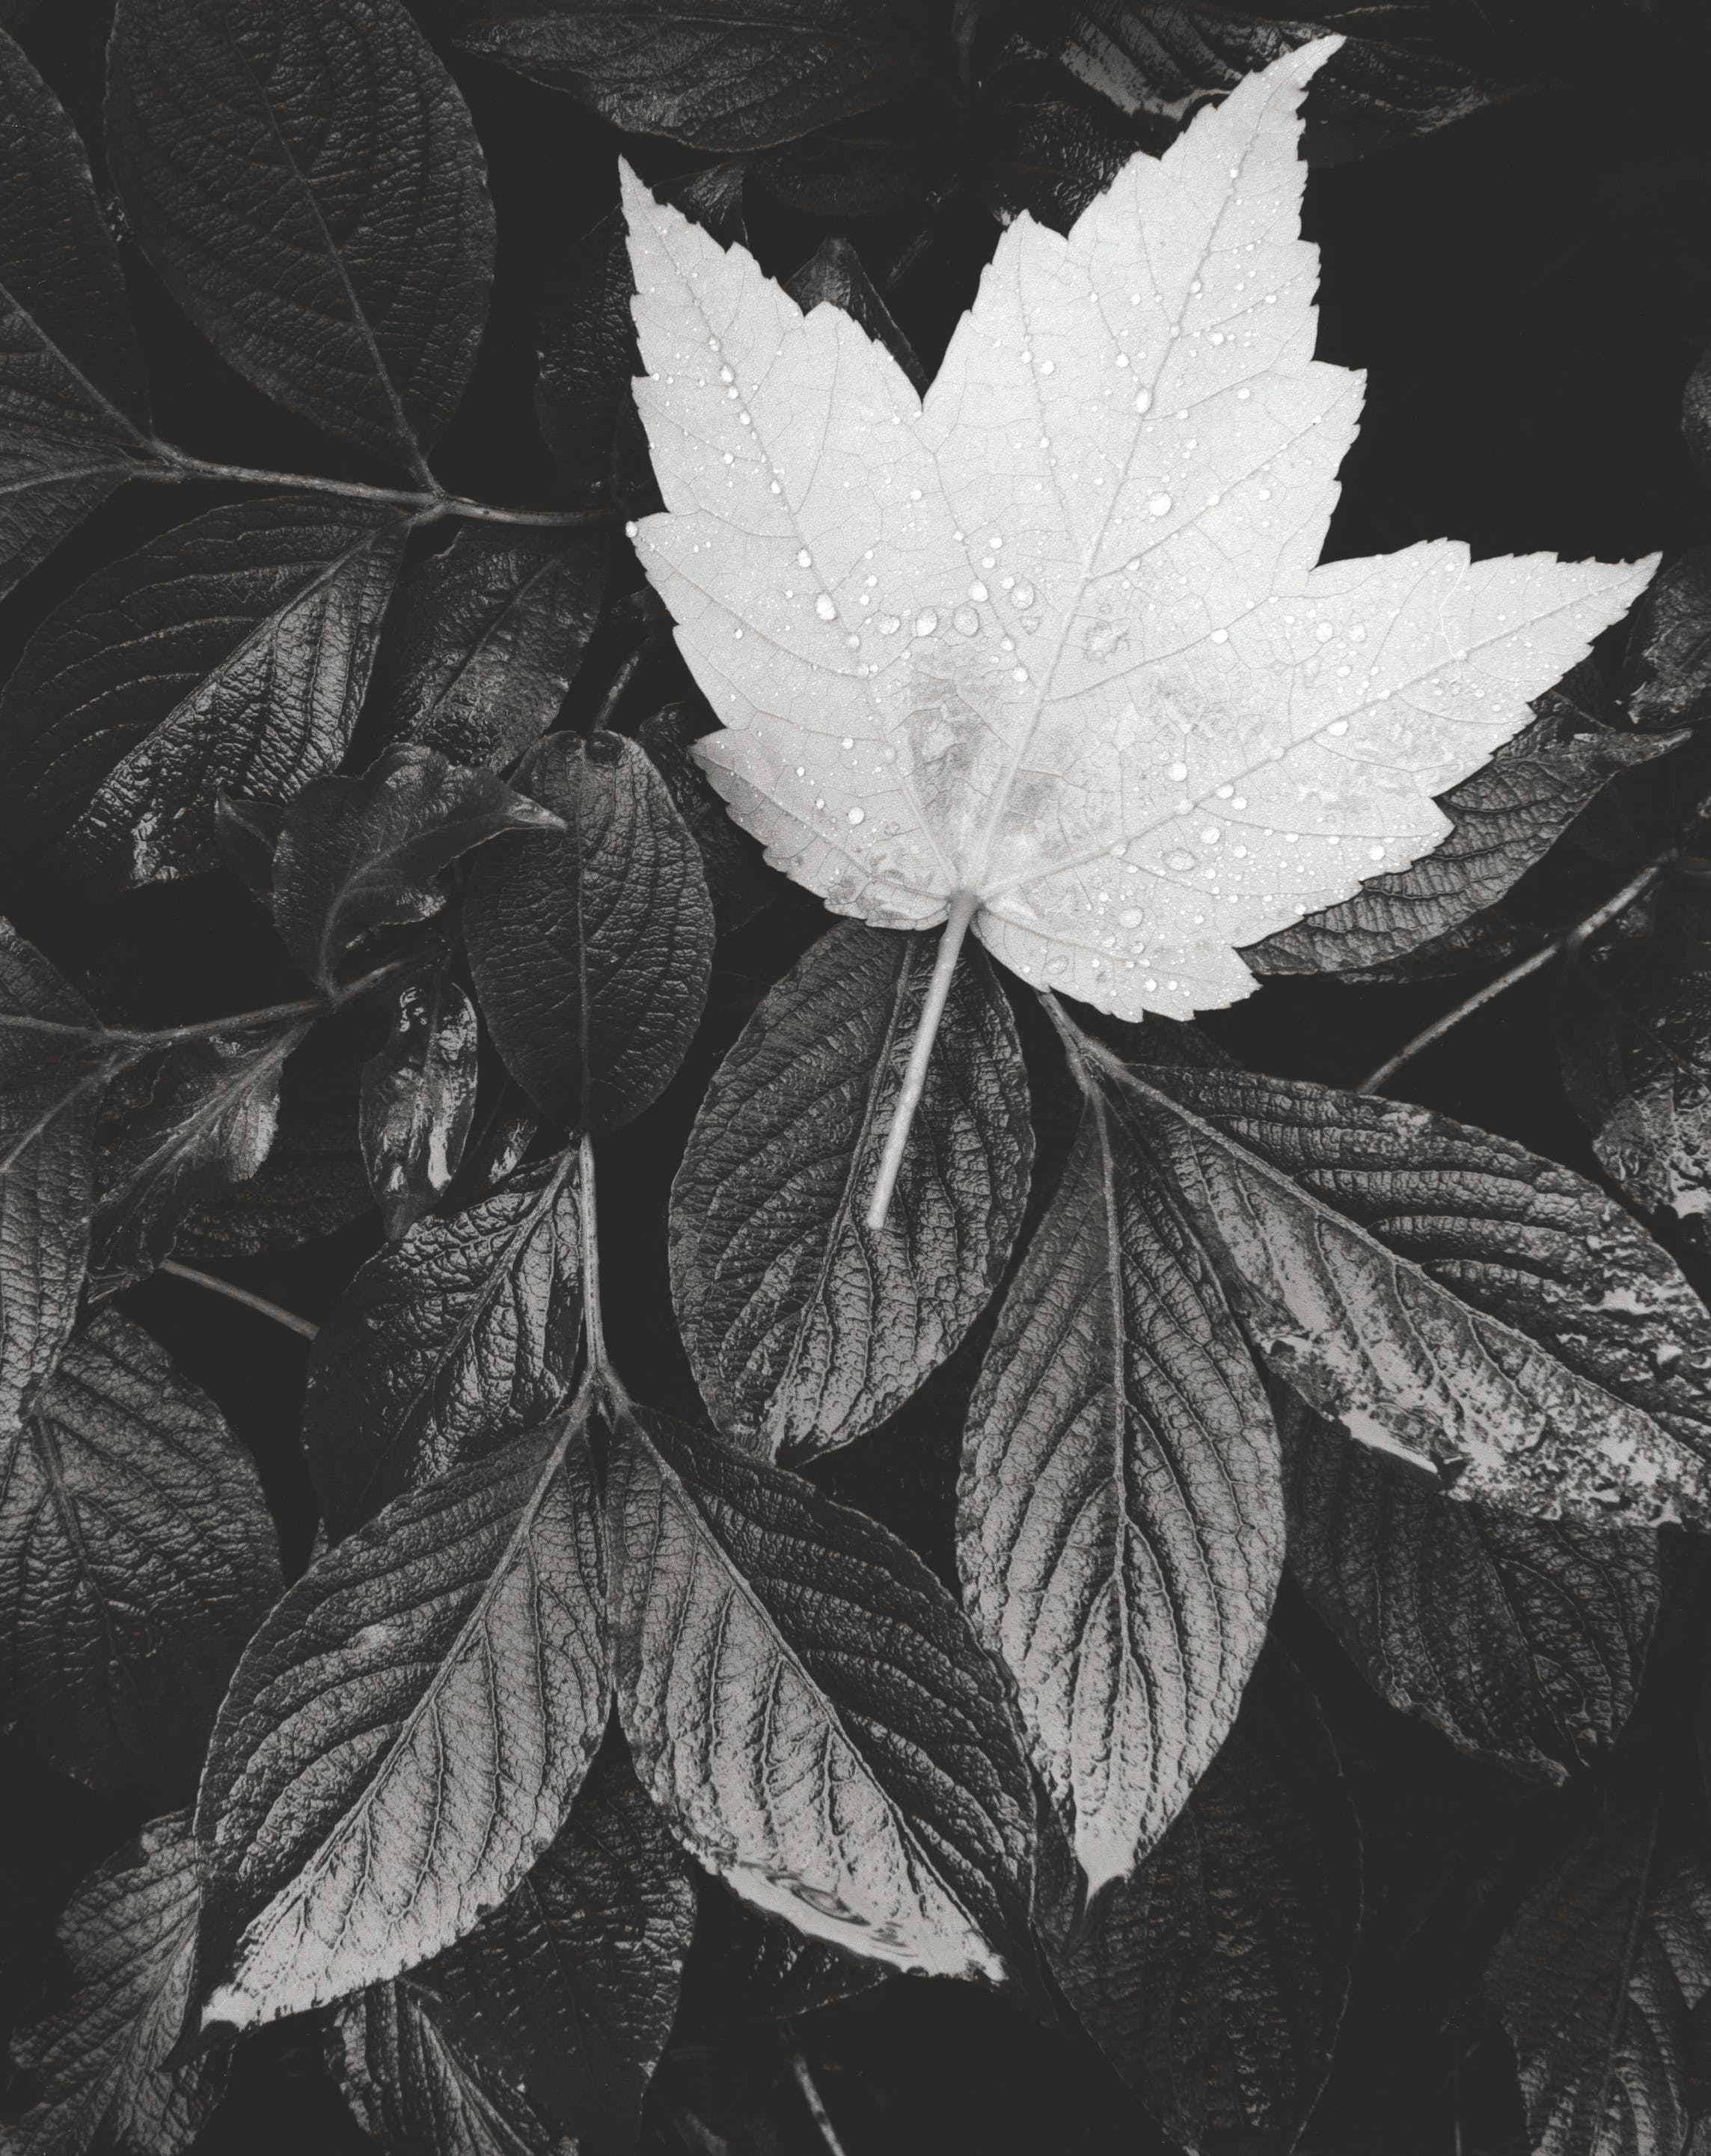 Grayscale Photo of Maple Leaf